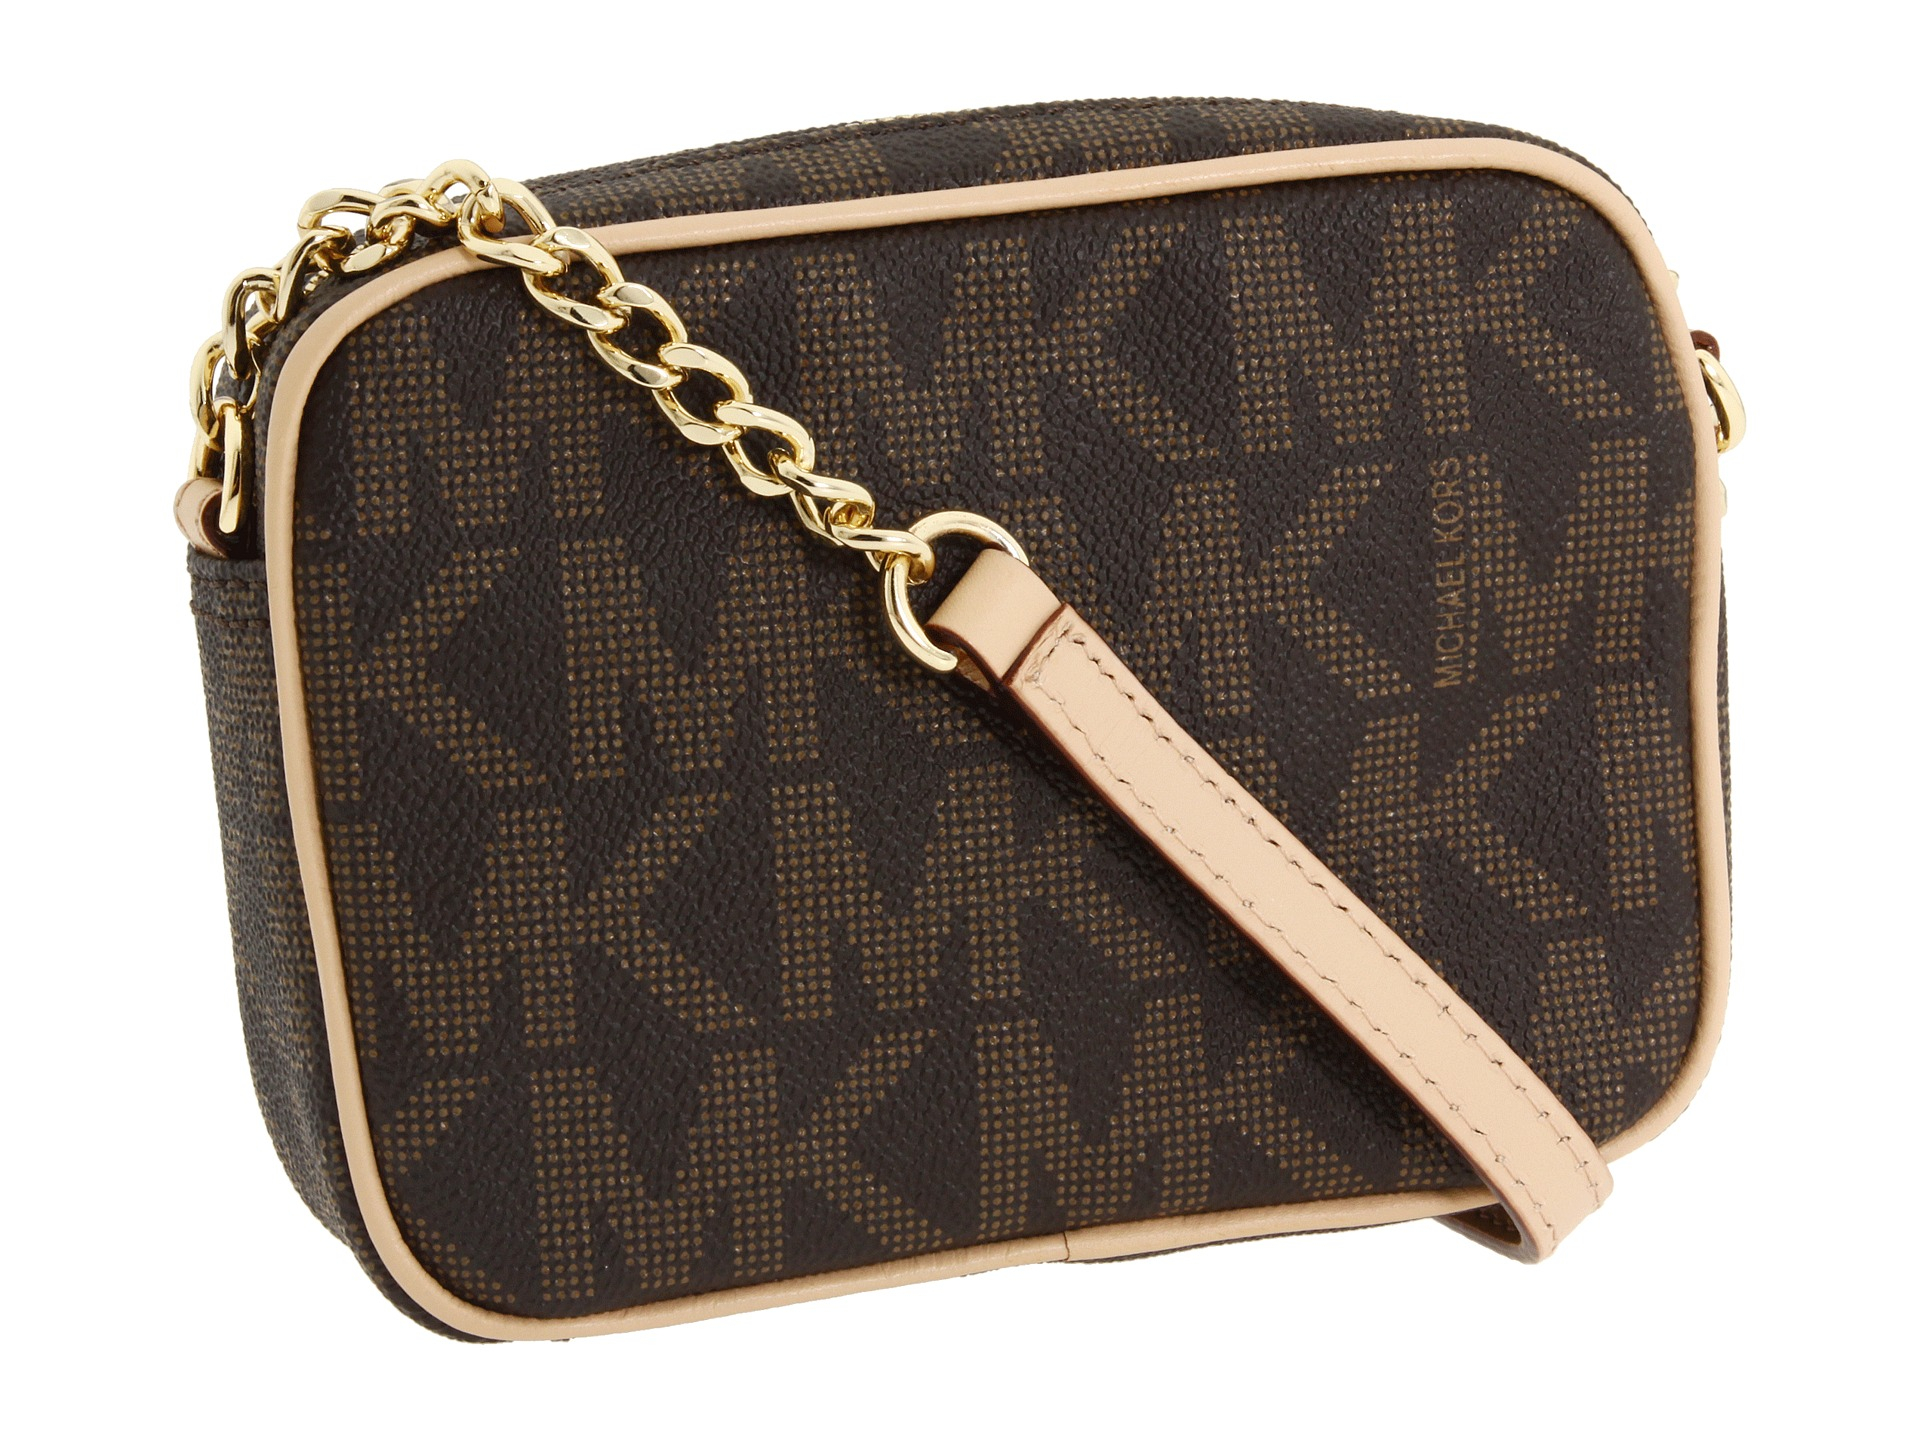 ab772c39c3ad ... best price lyst michael michael kors mk logo crossbody in brown 64156  d79da